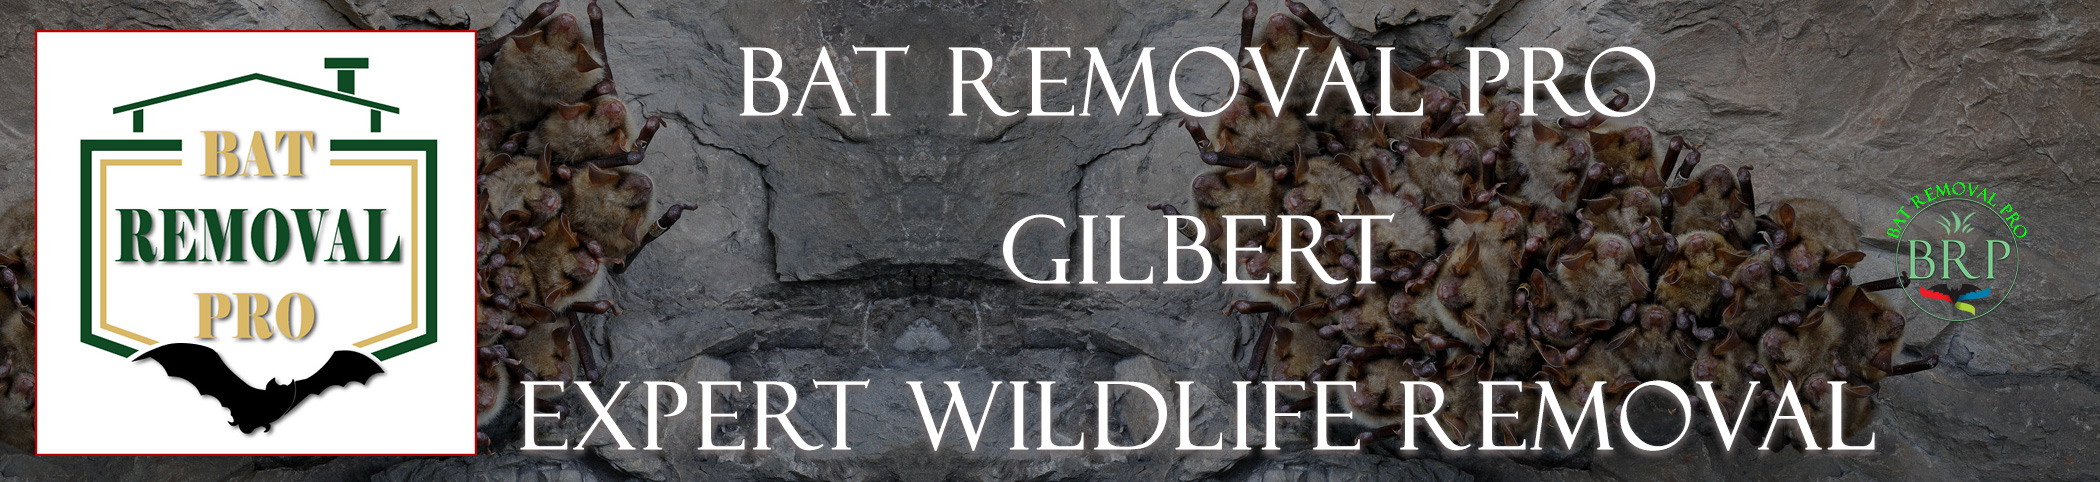 gilbert_arizona_HEADER_IMAGE bat removal pro